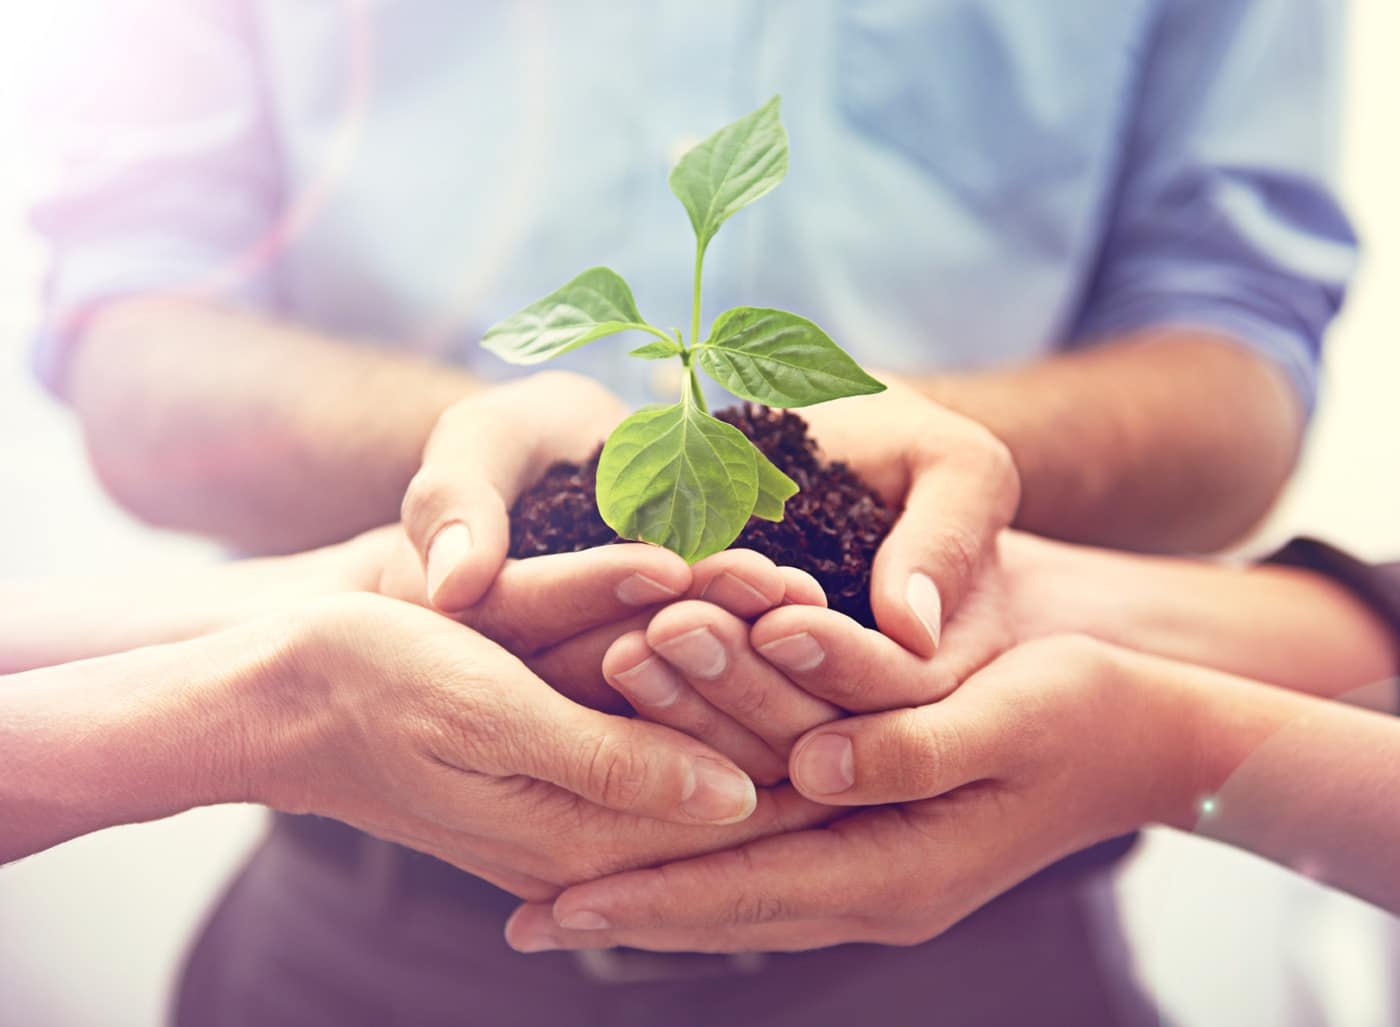 Stock image of hands holding a new plant that is in some dirt